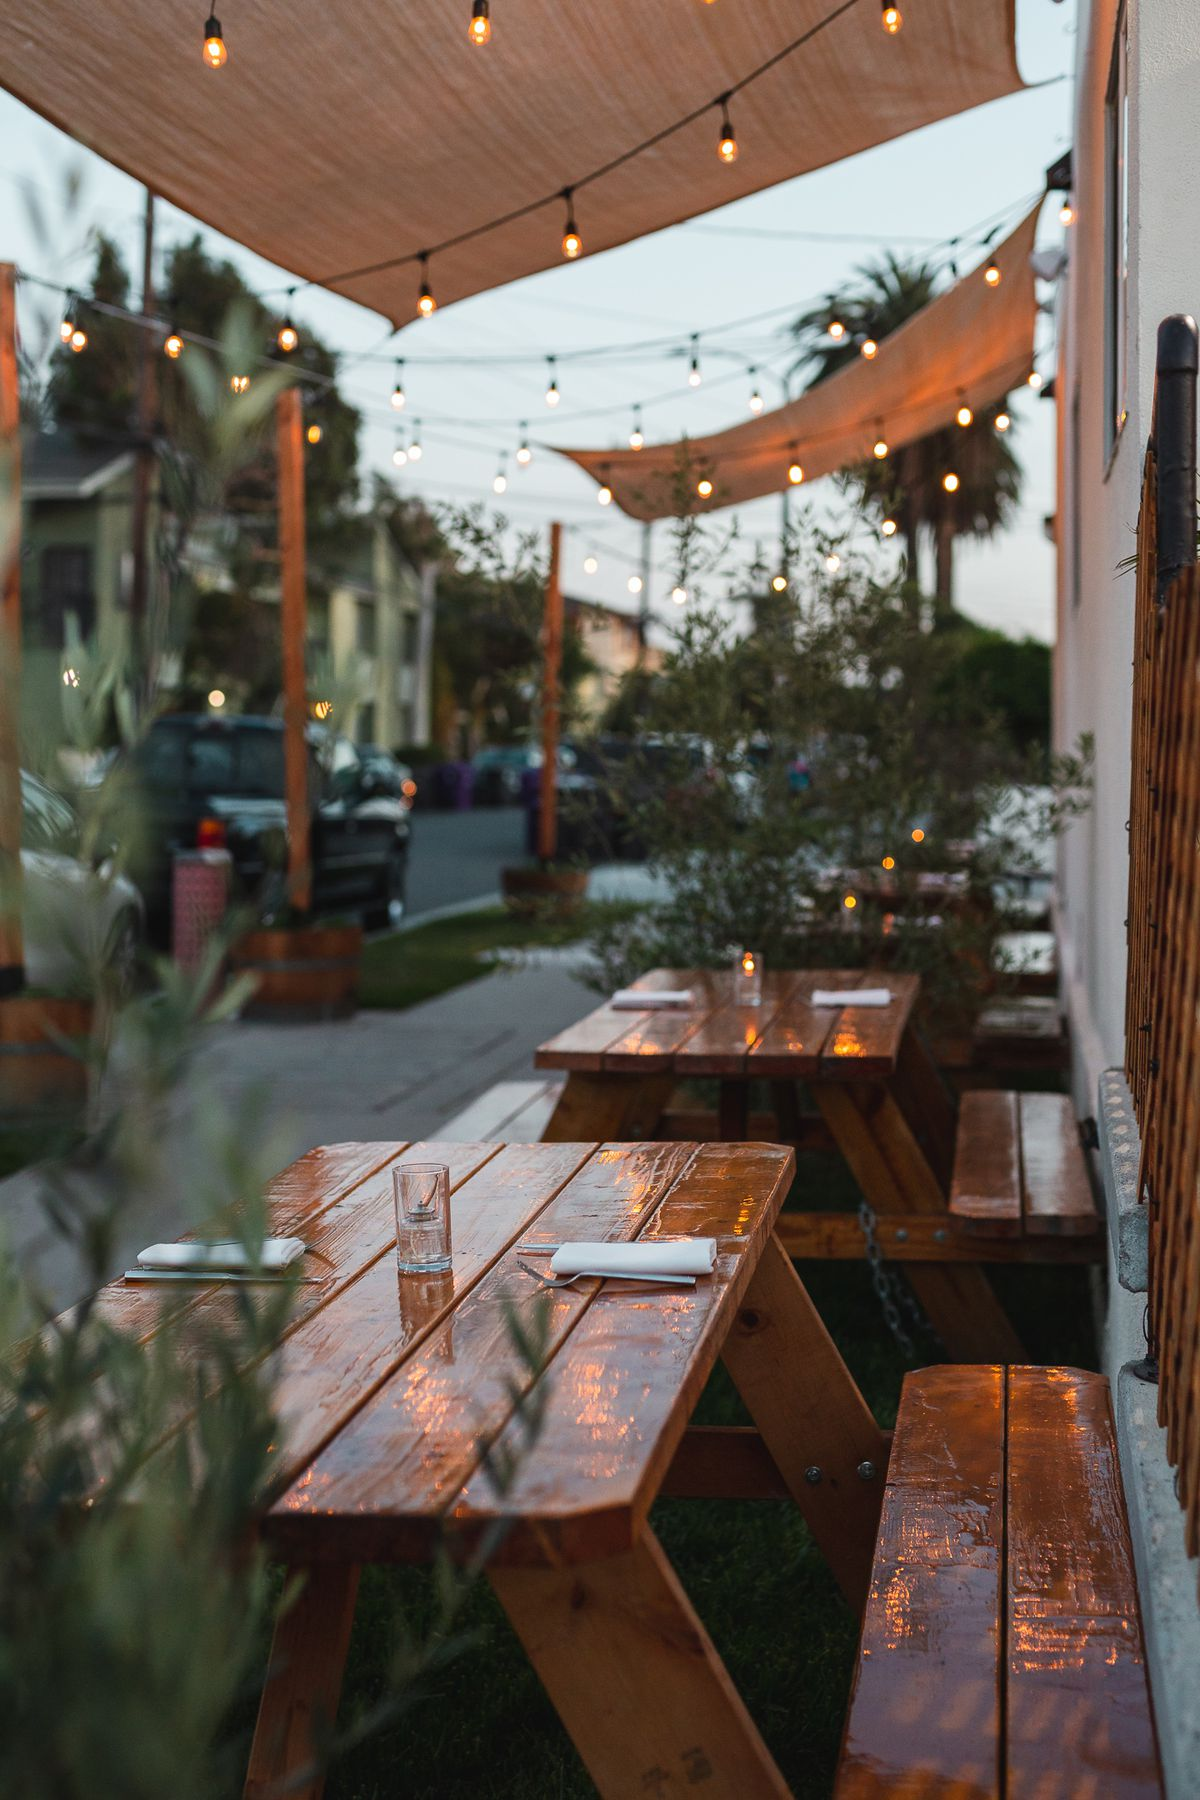 Outdoor seating at Heritage restaurant in Long Beach, California